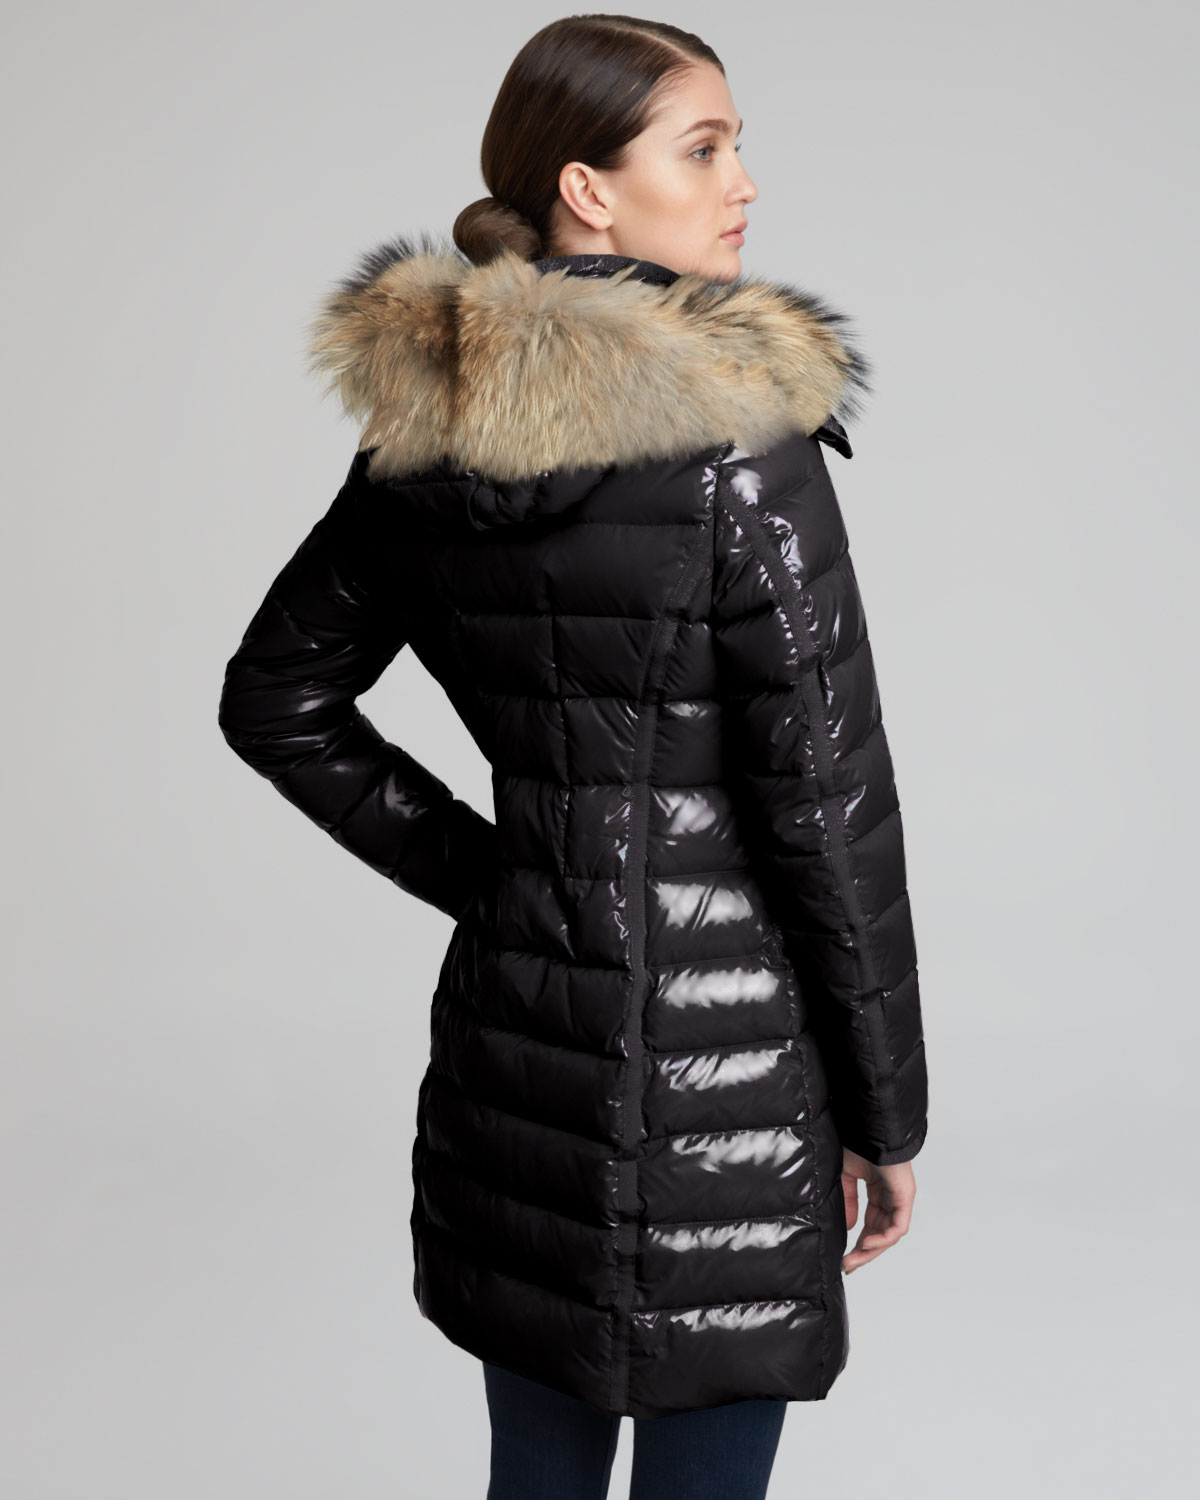 352ee39e959d coupon code for moncler puffer jacket with fur hood f6dd3 90a0f